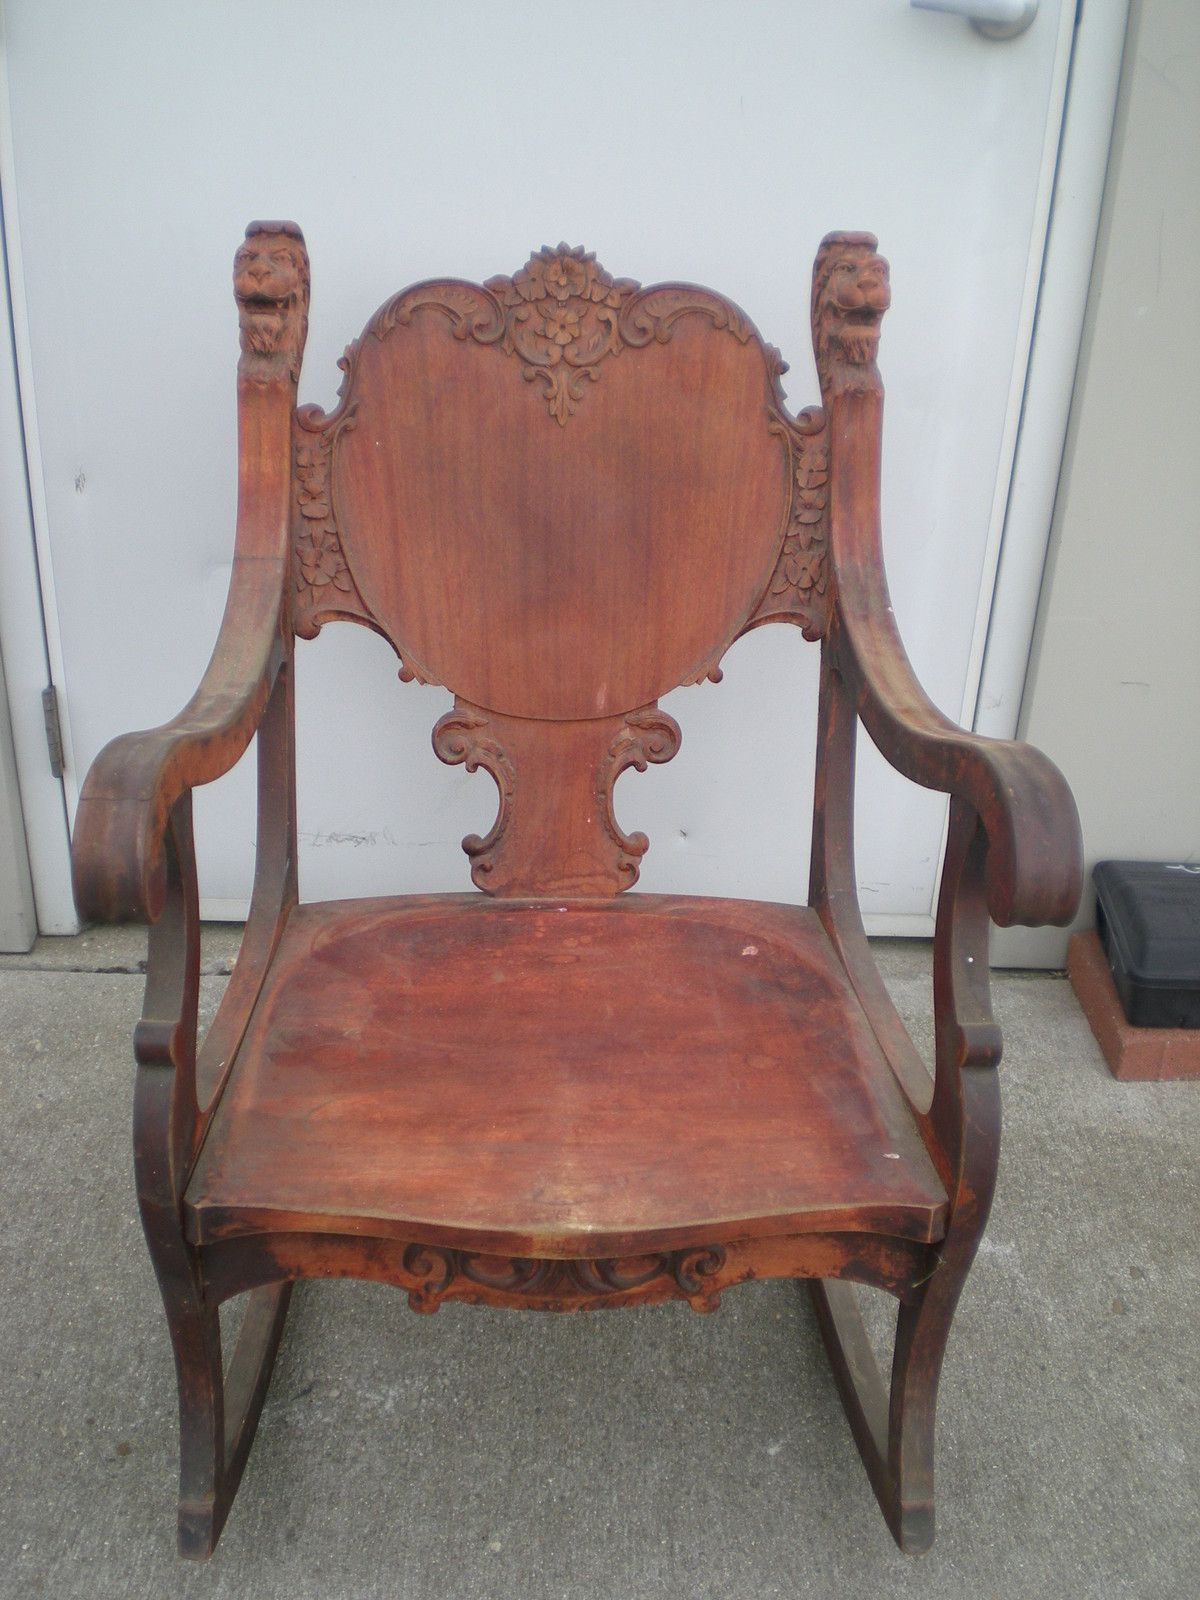 antique rocking chairs without arms white swivel office chair uk 1800s furniture